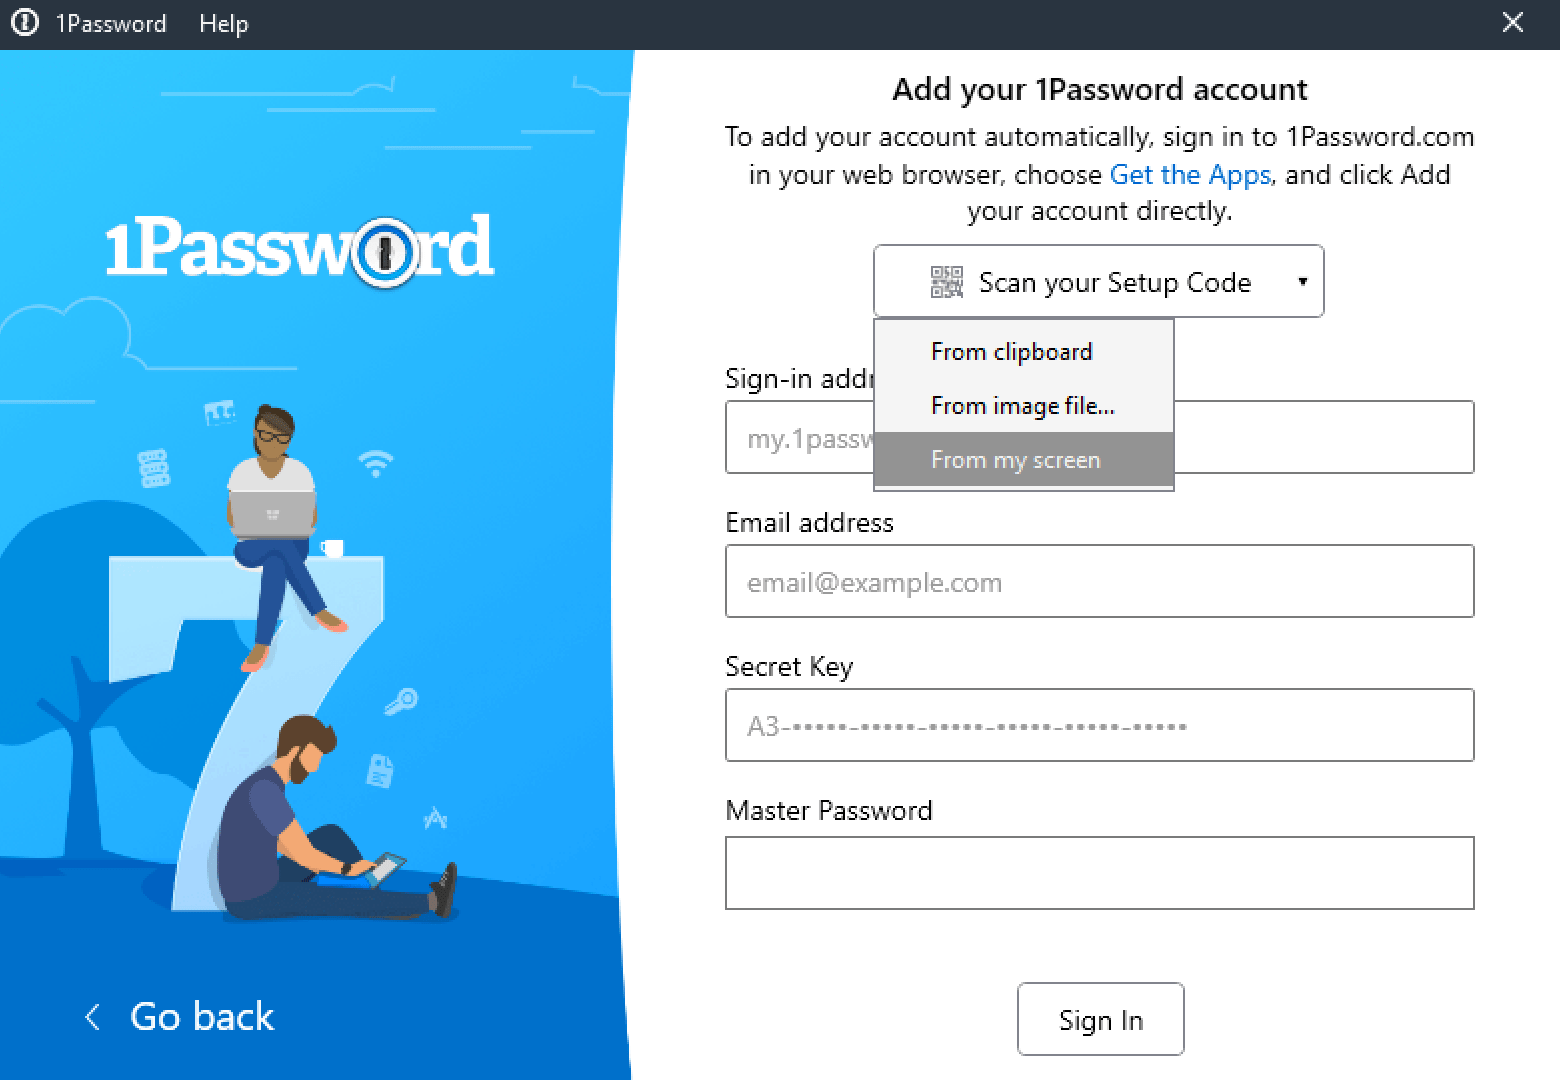 To add your 1Password account details, scan your Setup Code